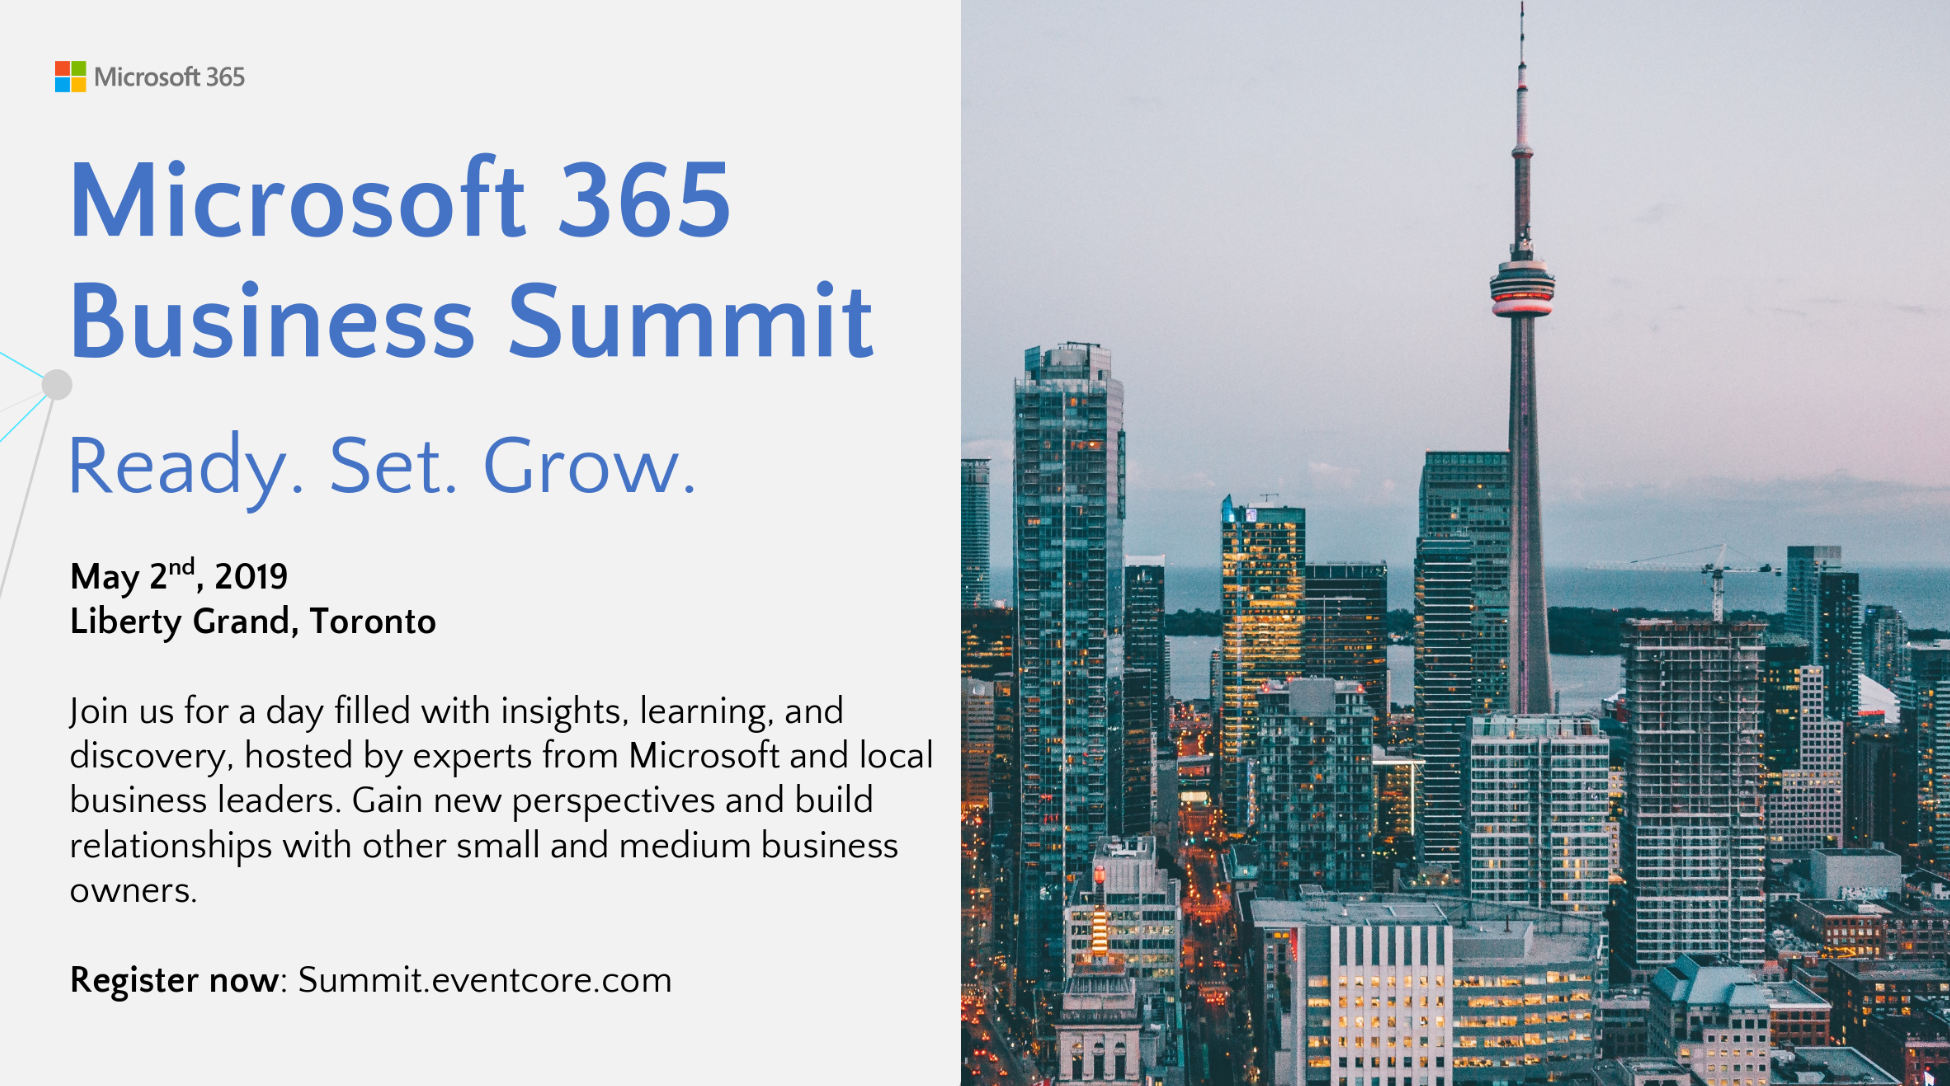 The Microsoft 365 Business Summit is Coming to Toronto - StartUp